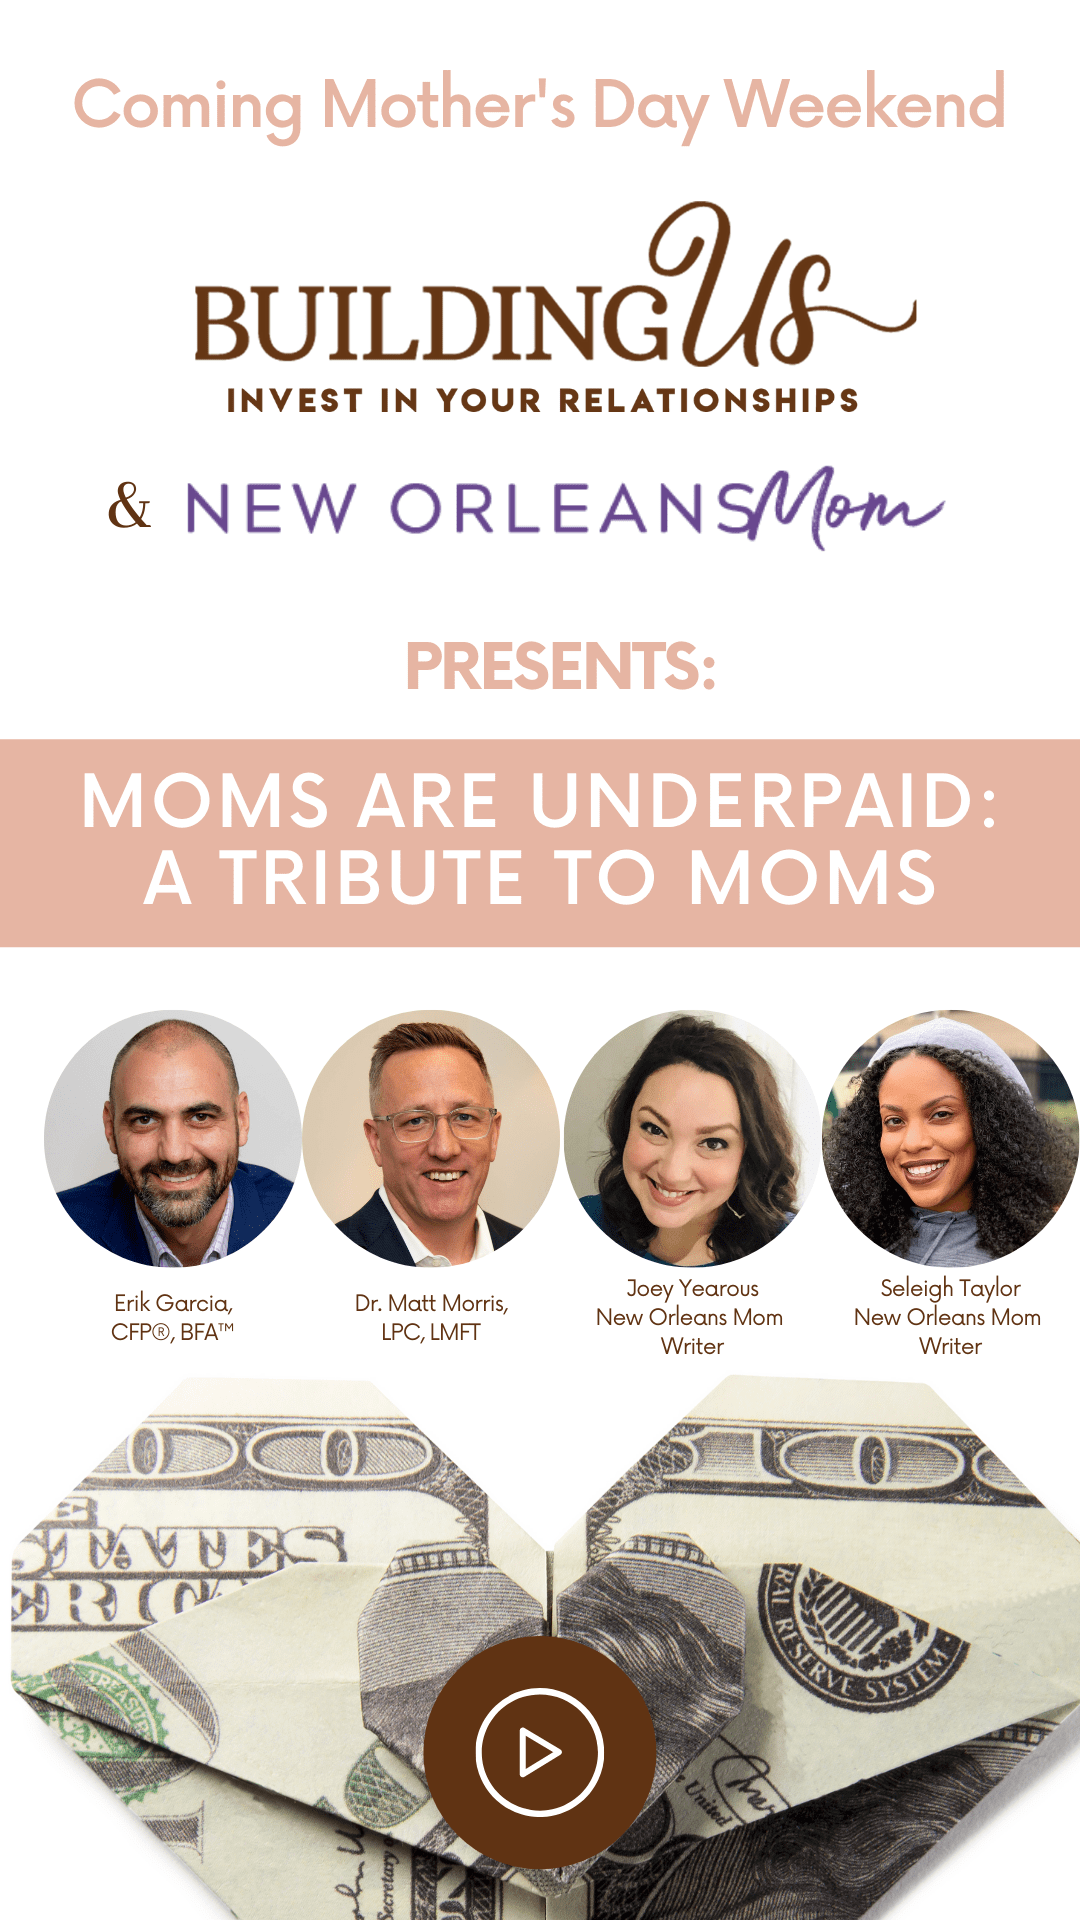 New Orleans Mom